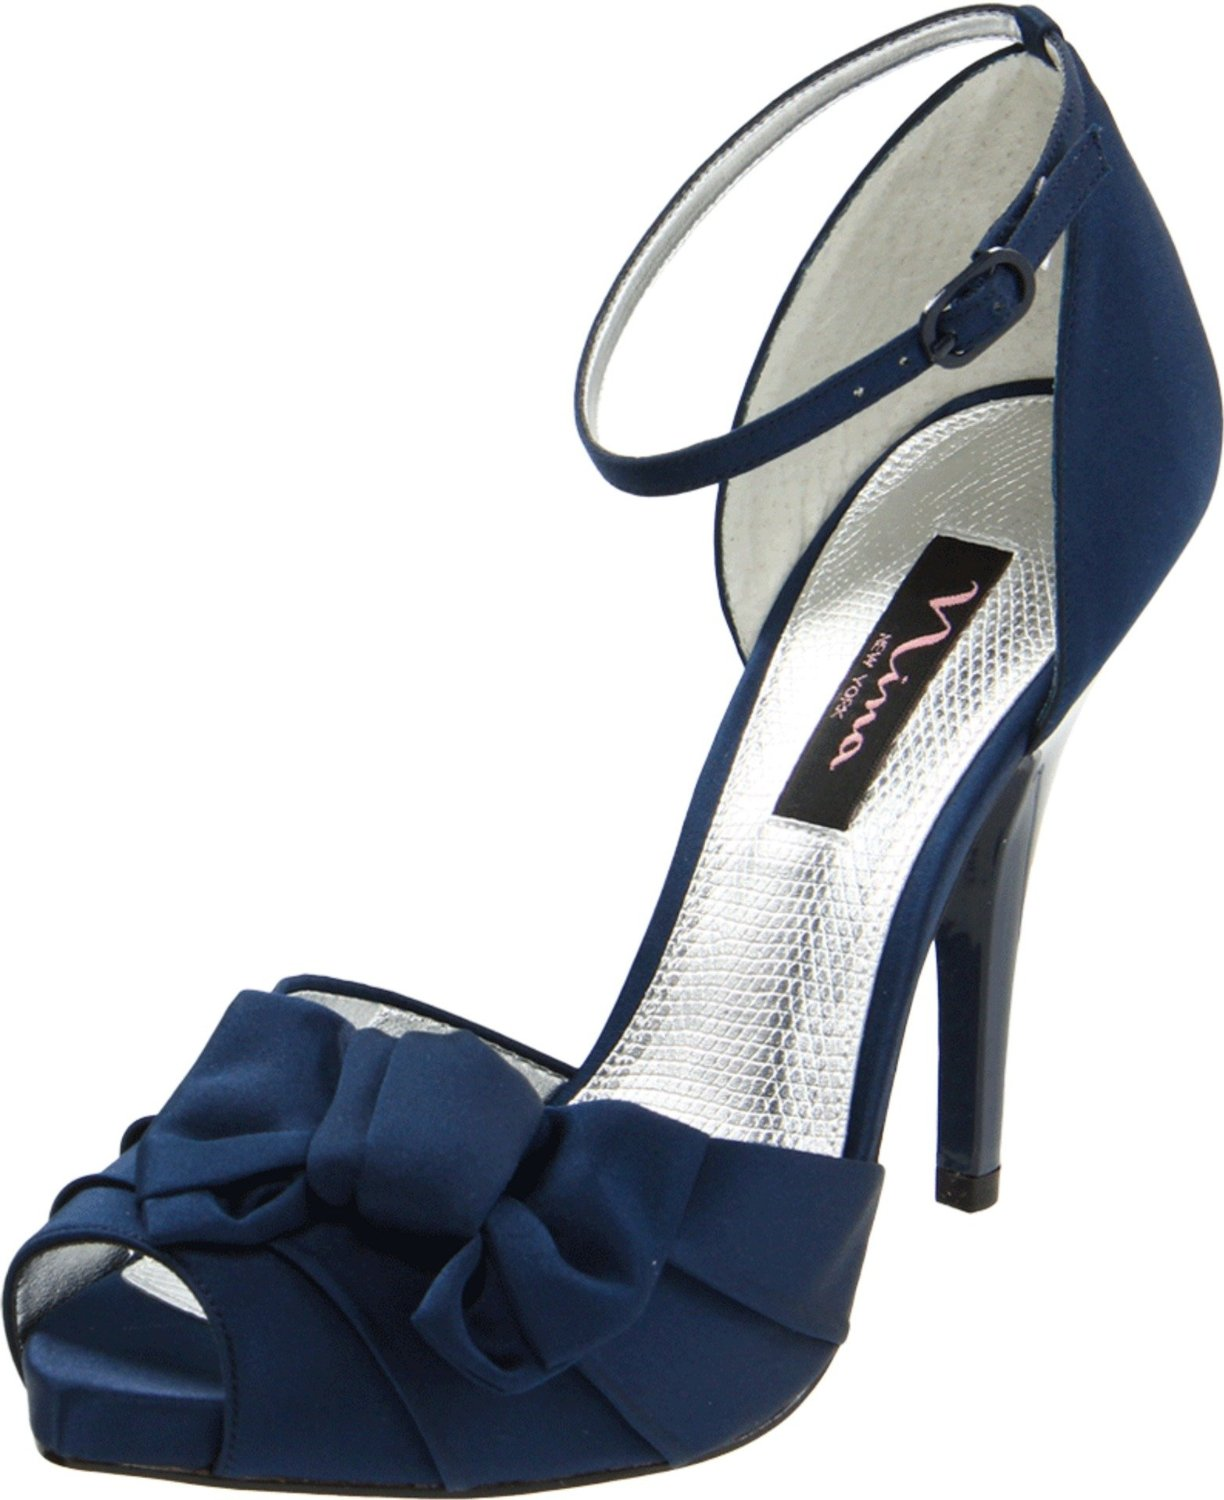 Designer Shoes Platform Pump Heels Navy Blue Bridal